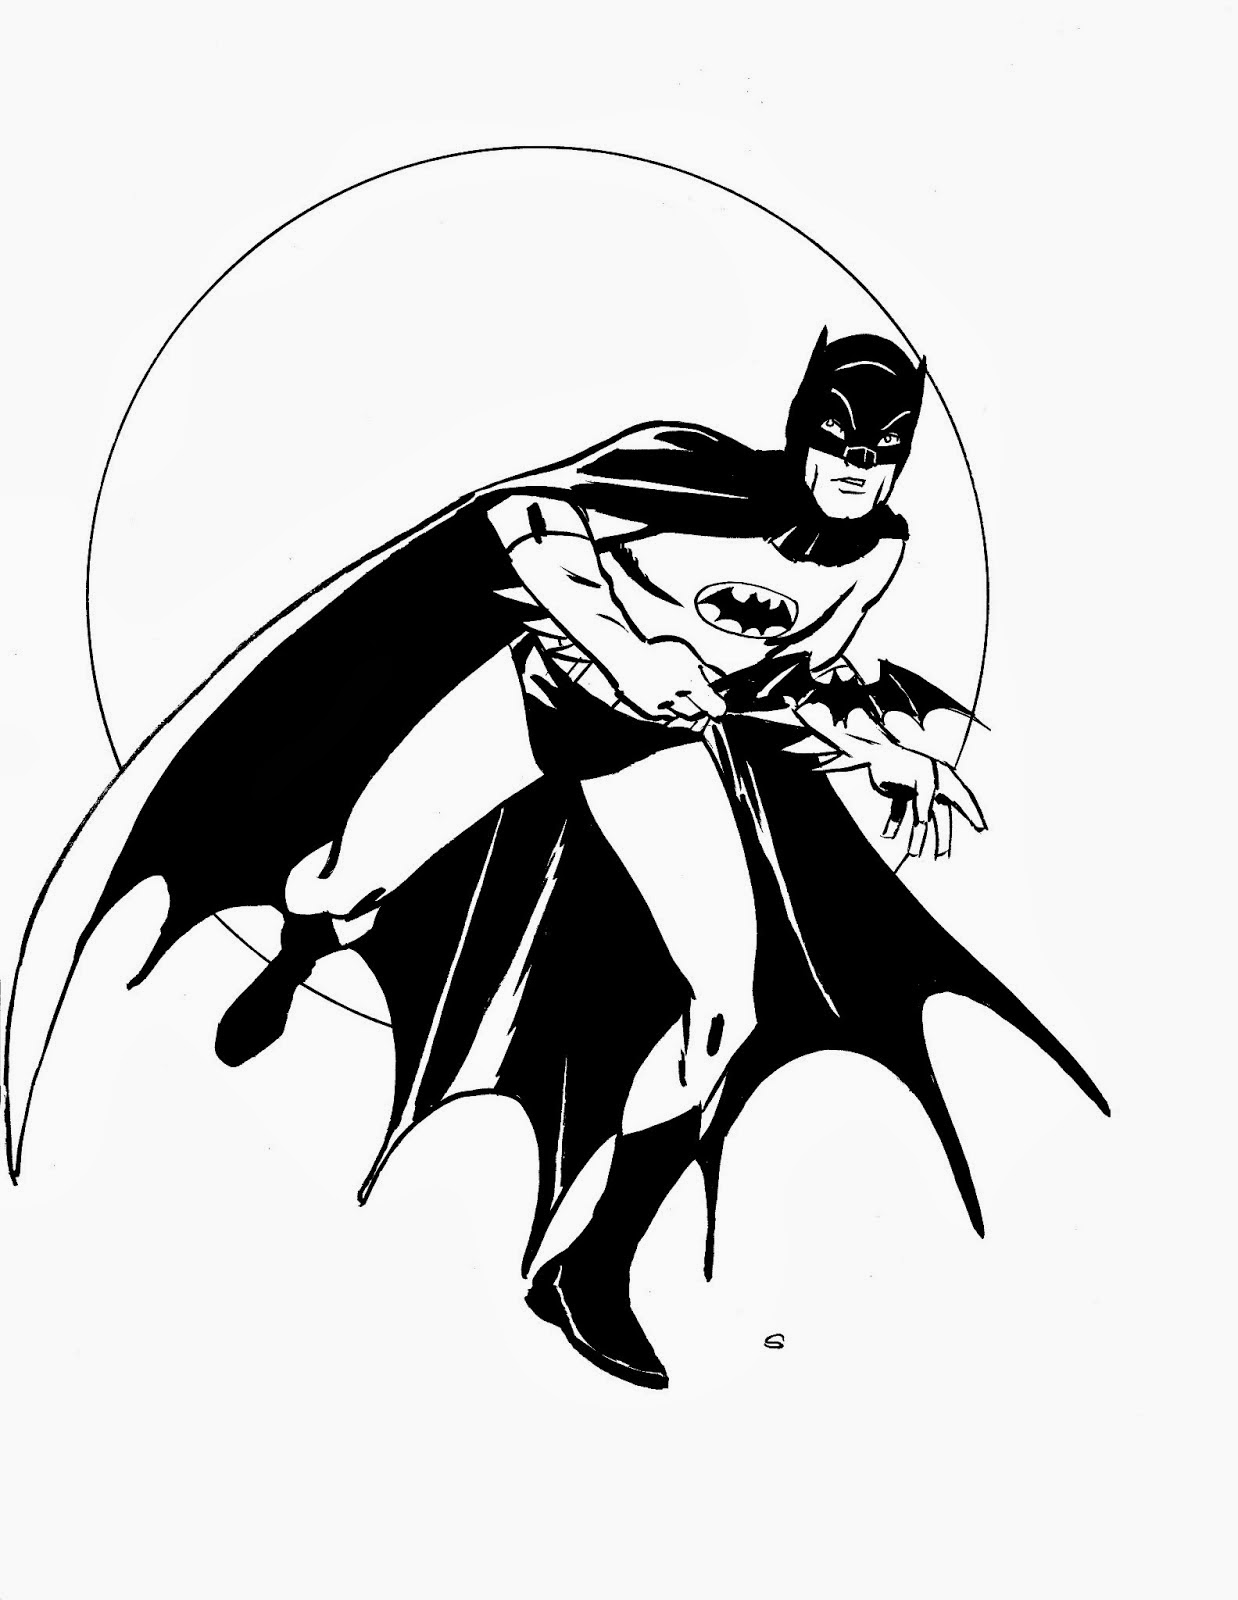 batmancoloring pages batman free to color for children batman kids coloring pages pages batmancoloring